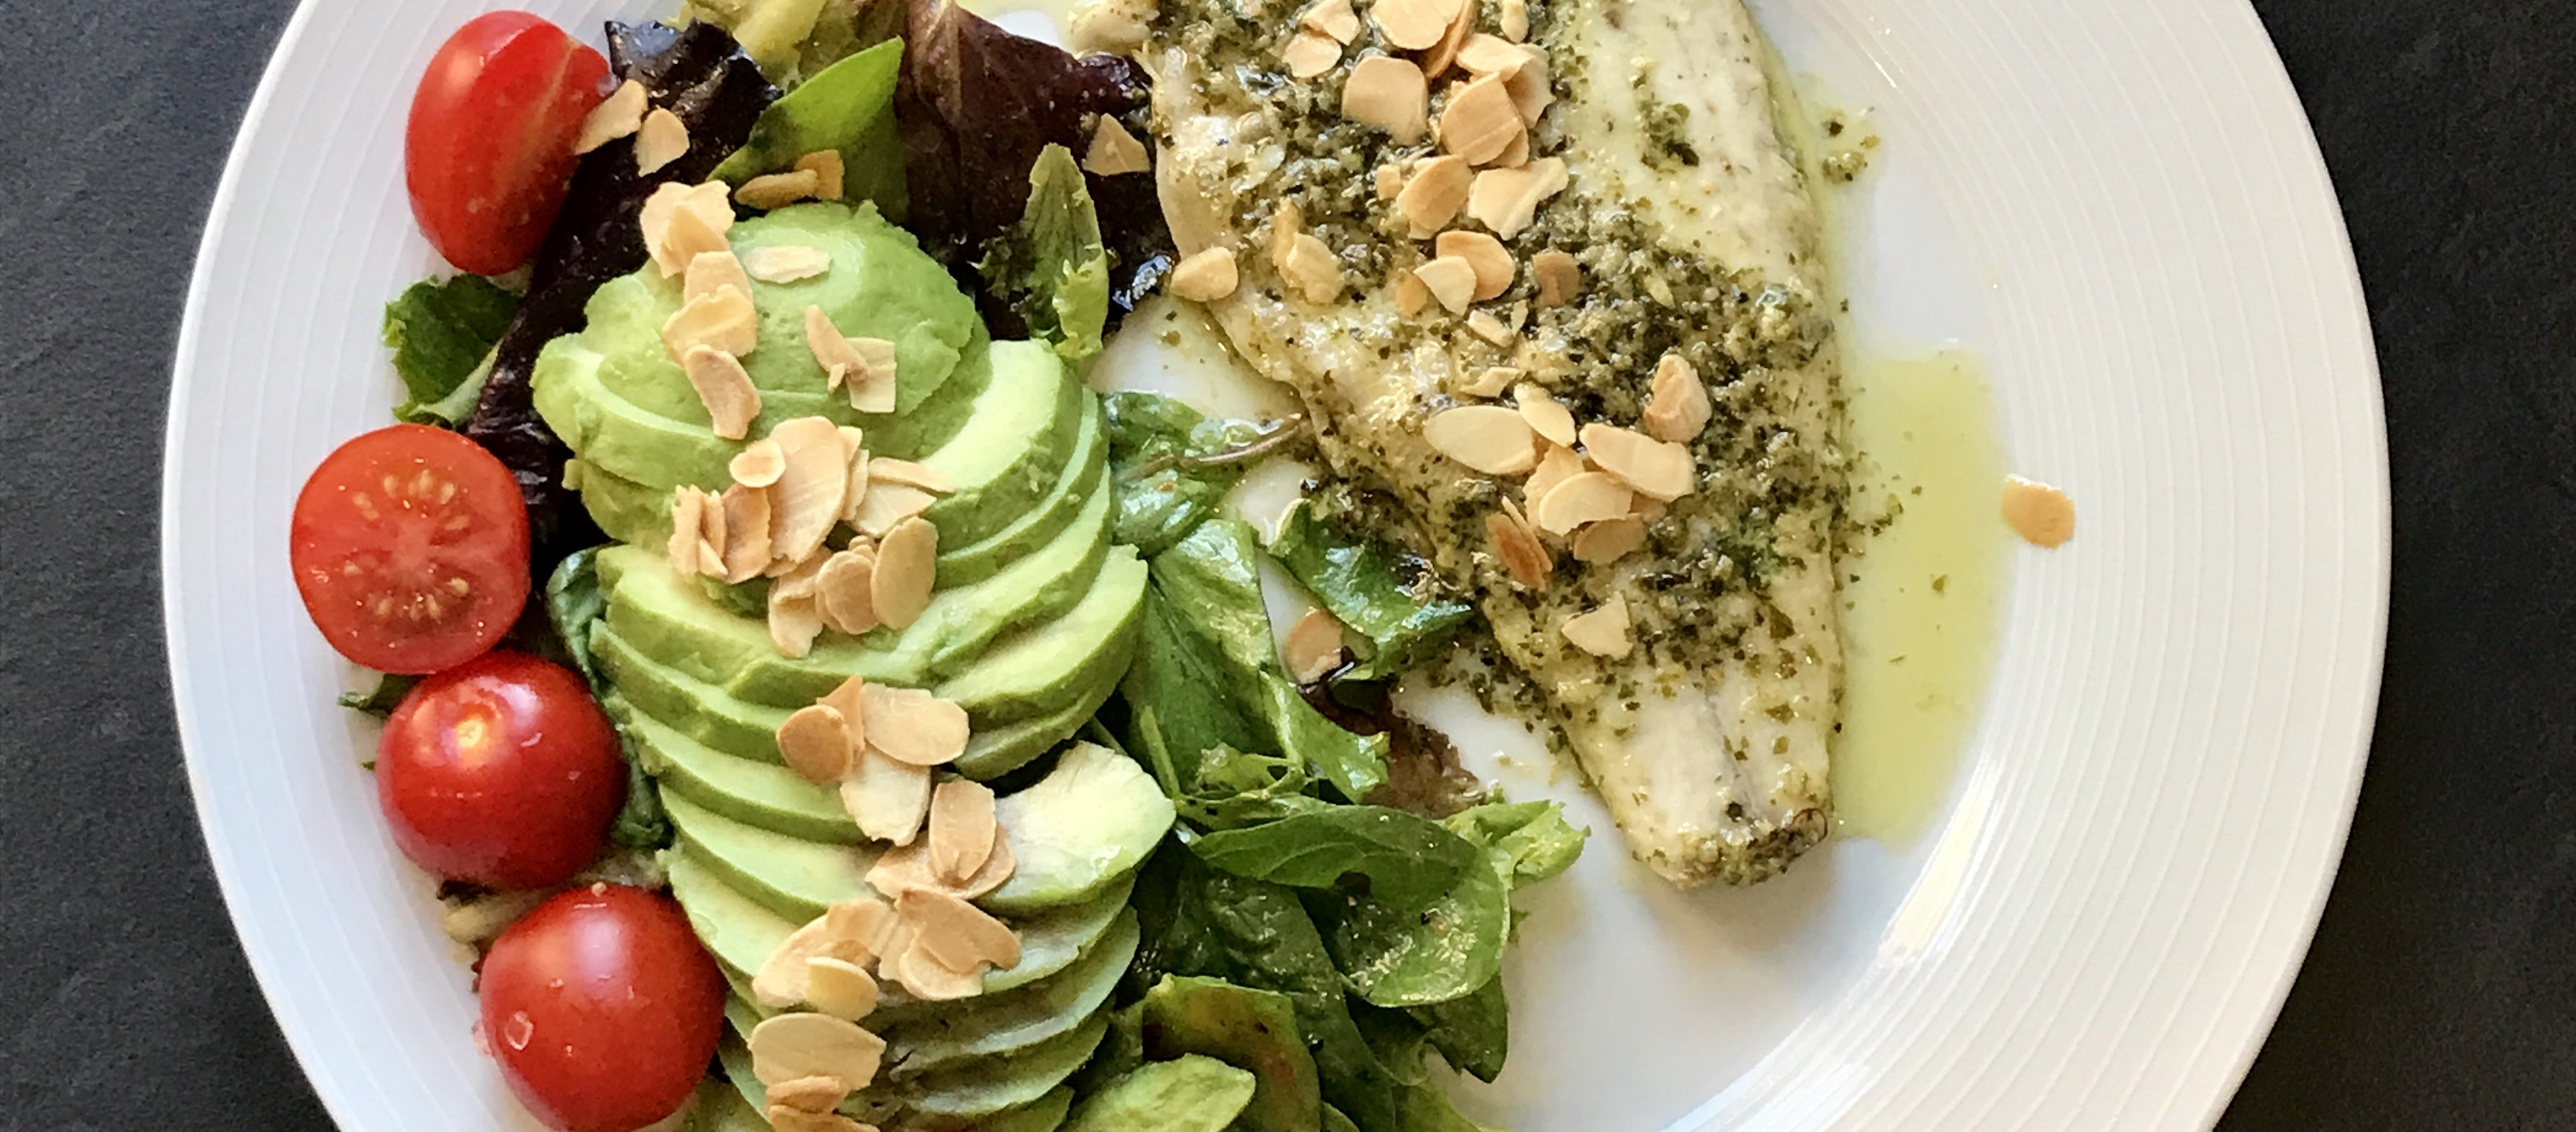 Pesto sea bass and almonds with a tropical salad